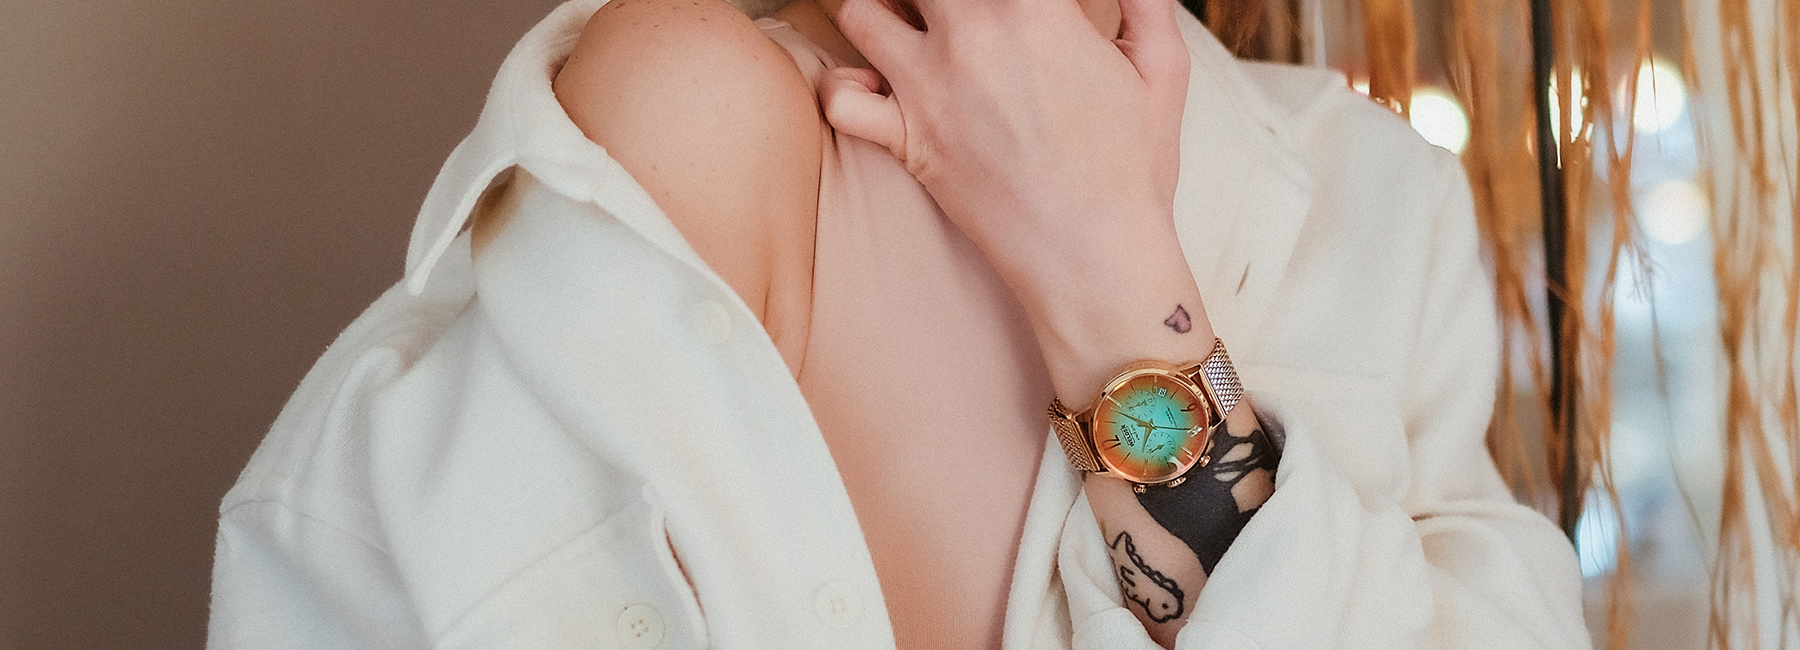 Wristwatch Combinations Compatible with Autumn Colors